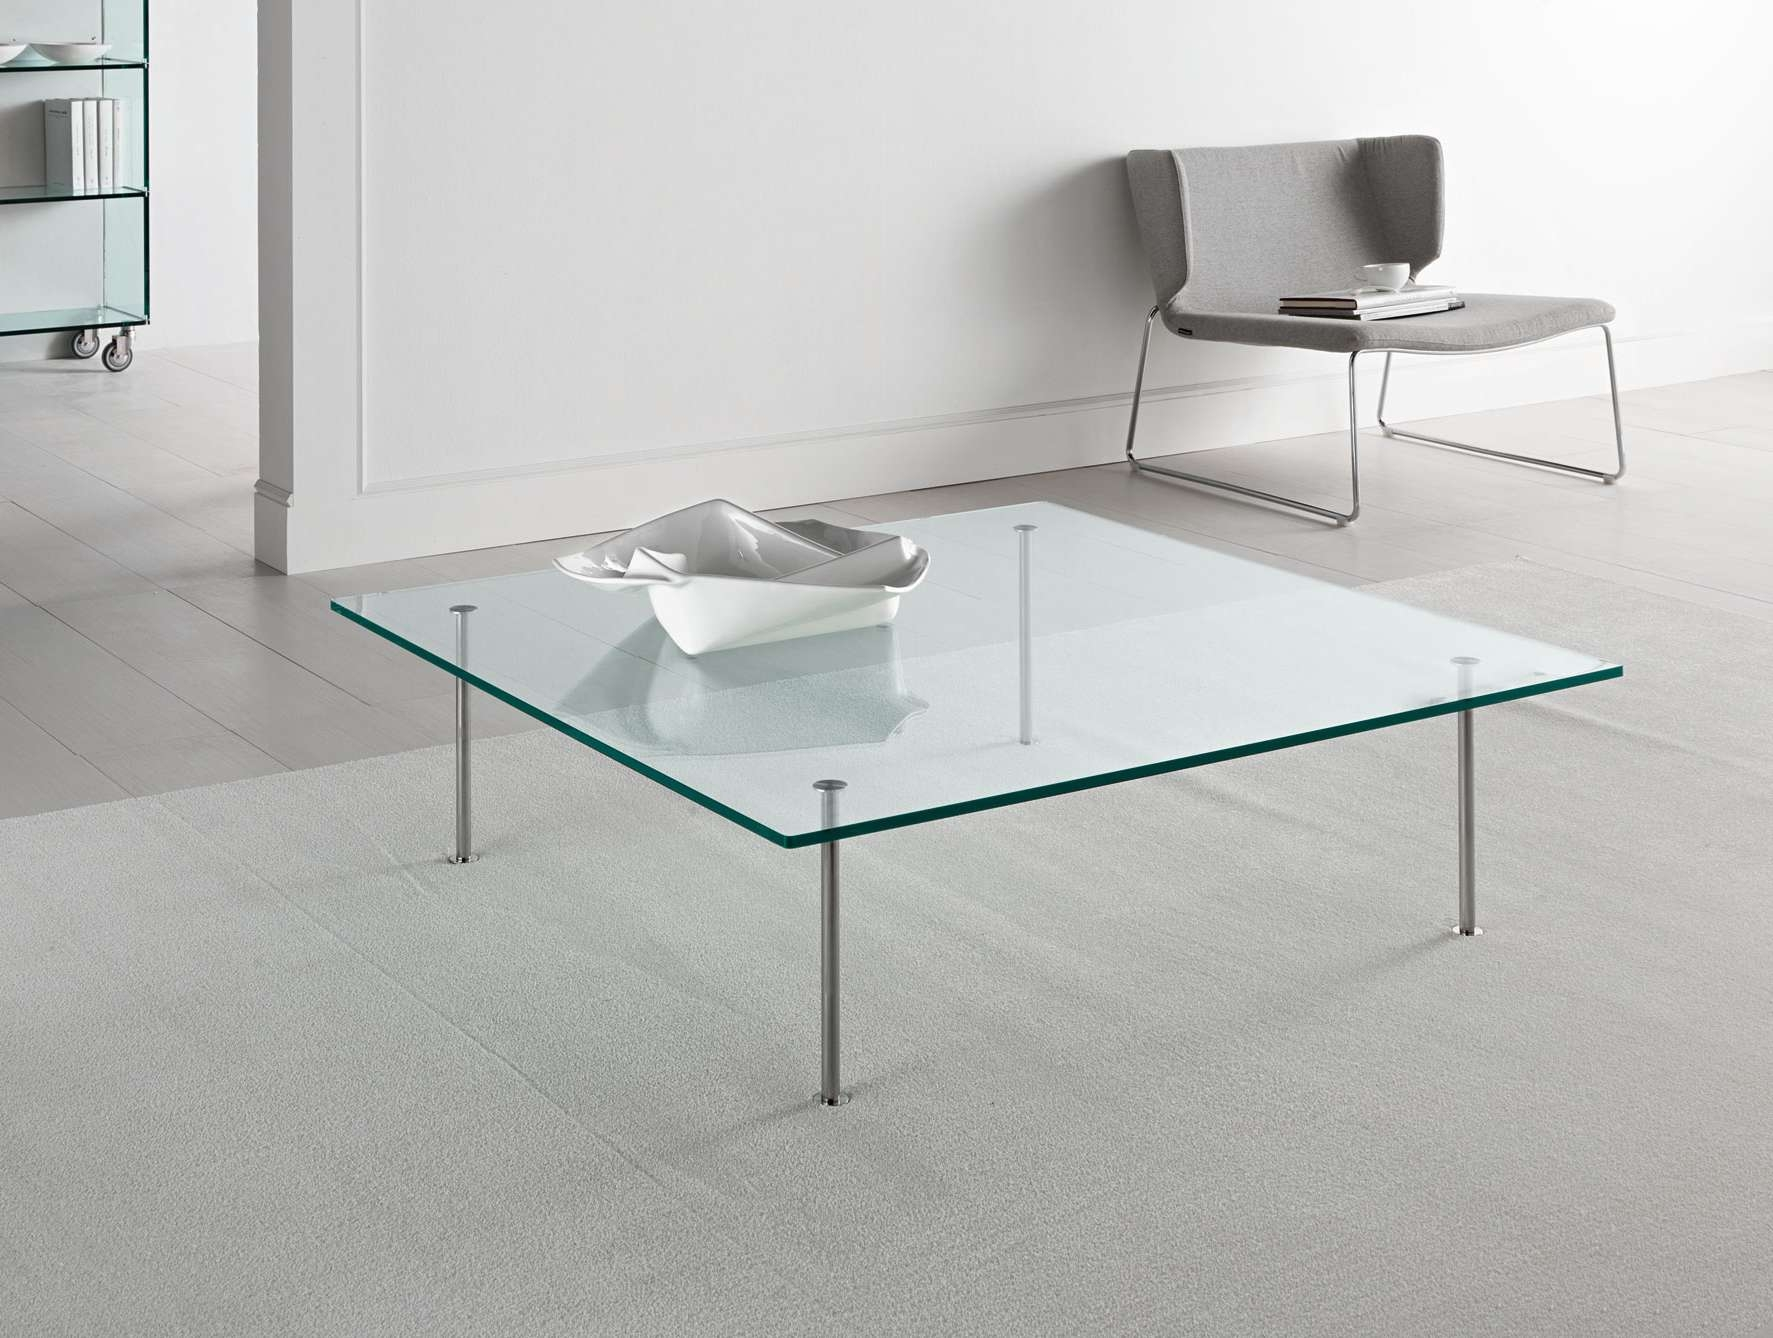 Famous Glass Square Coffee Tables Regarding Nella Vetrina Tonelli Twig Modular Italian Square Coffee Table (View 7 of 20)